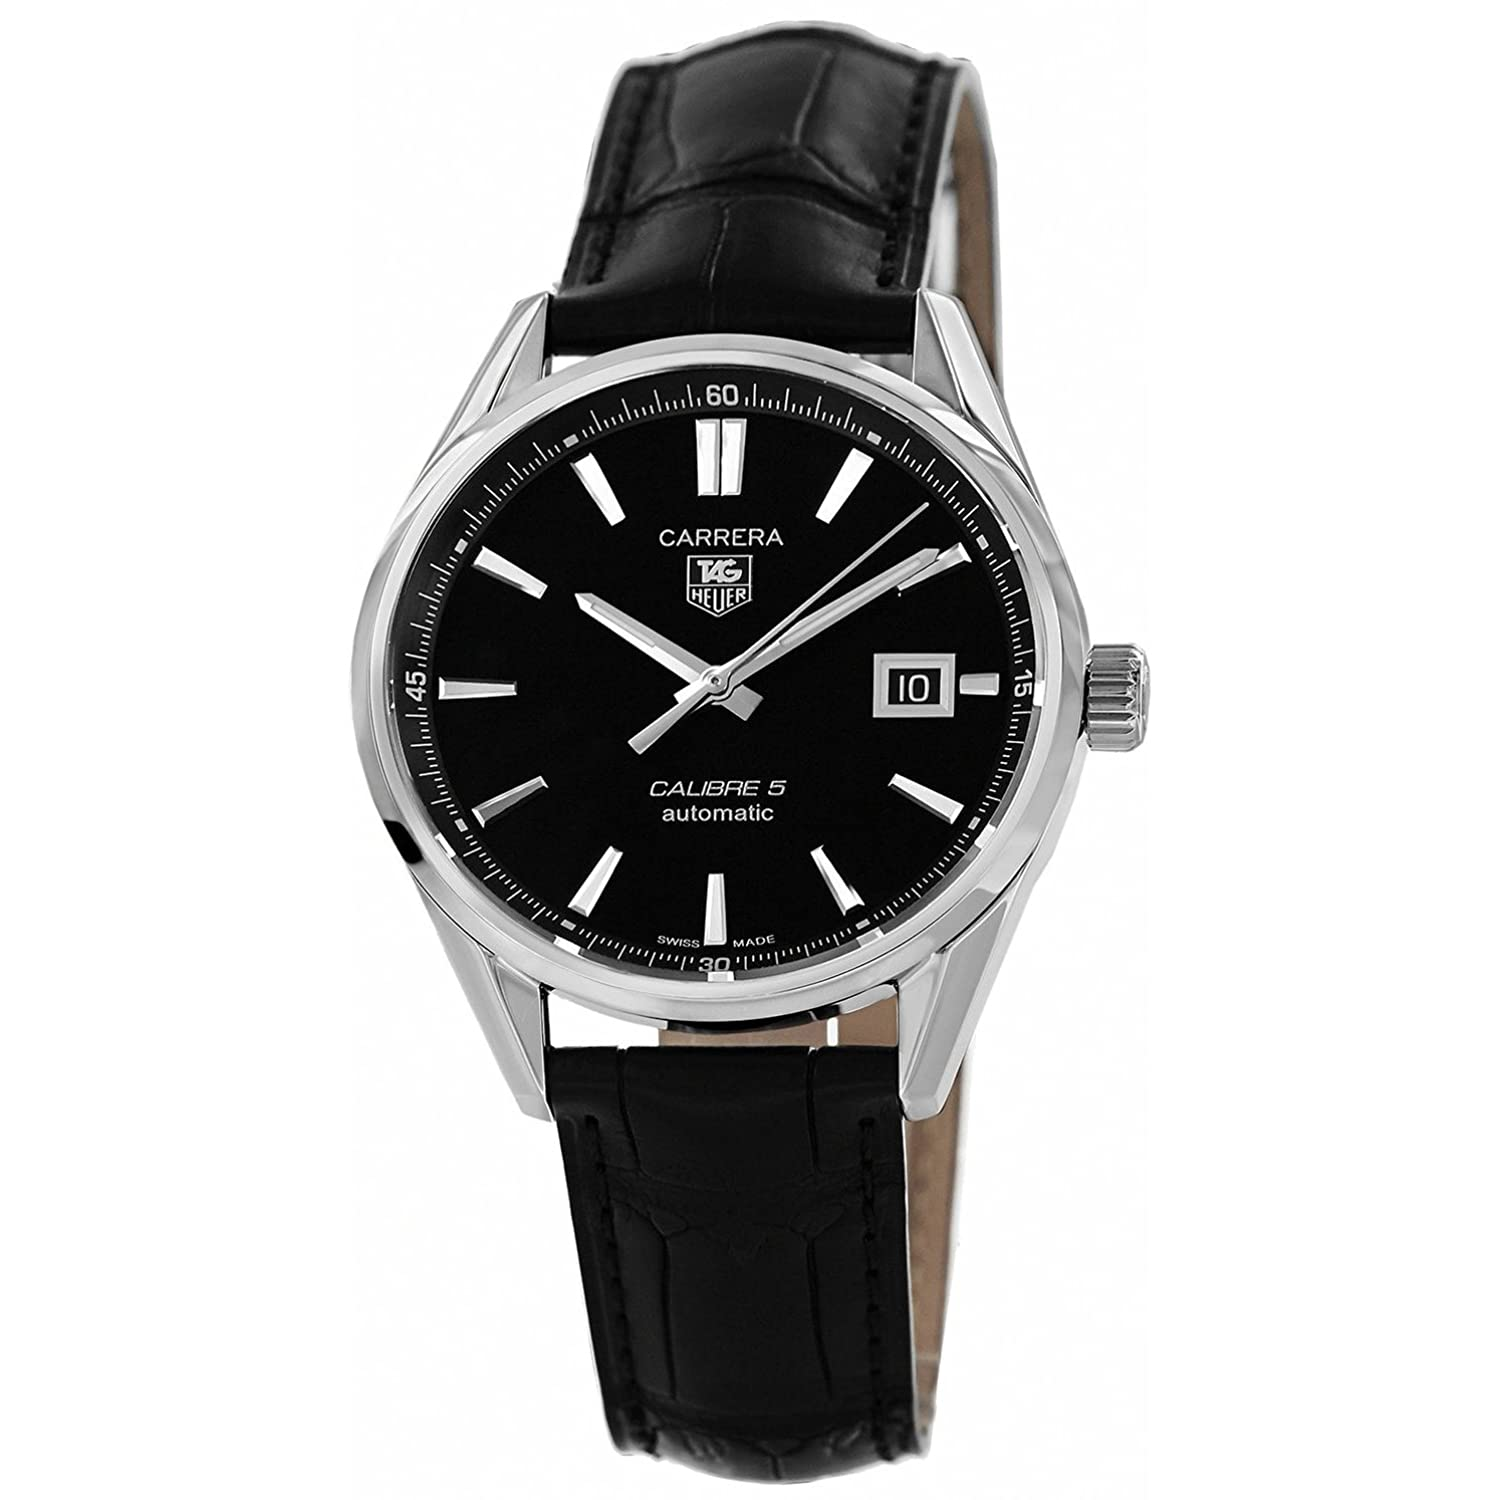 tag heuer carrera gmt automatic mens watch wv2116 fc6203 amazon tag heuer carrera calibre 5 leather mens watch war211a fc6180